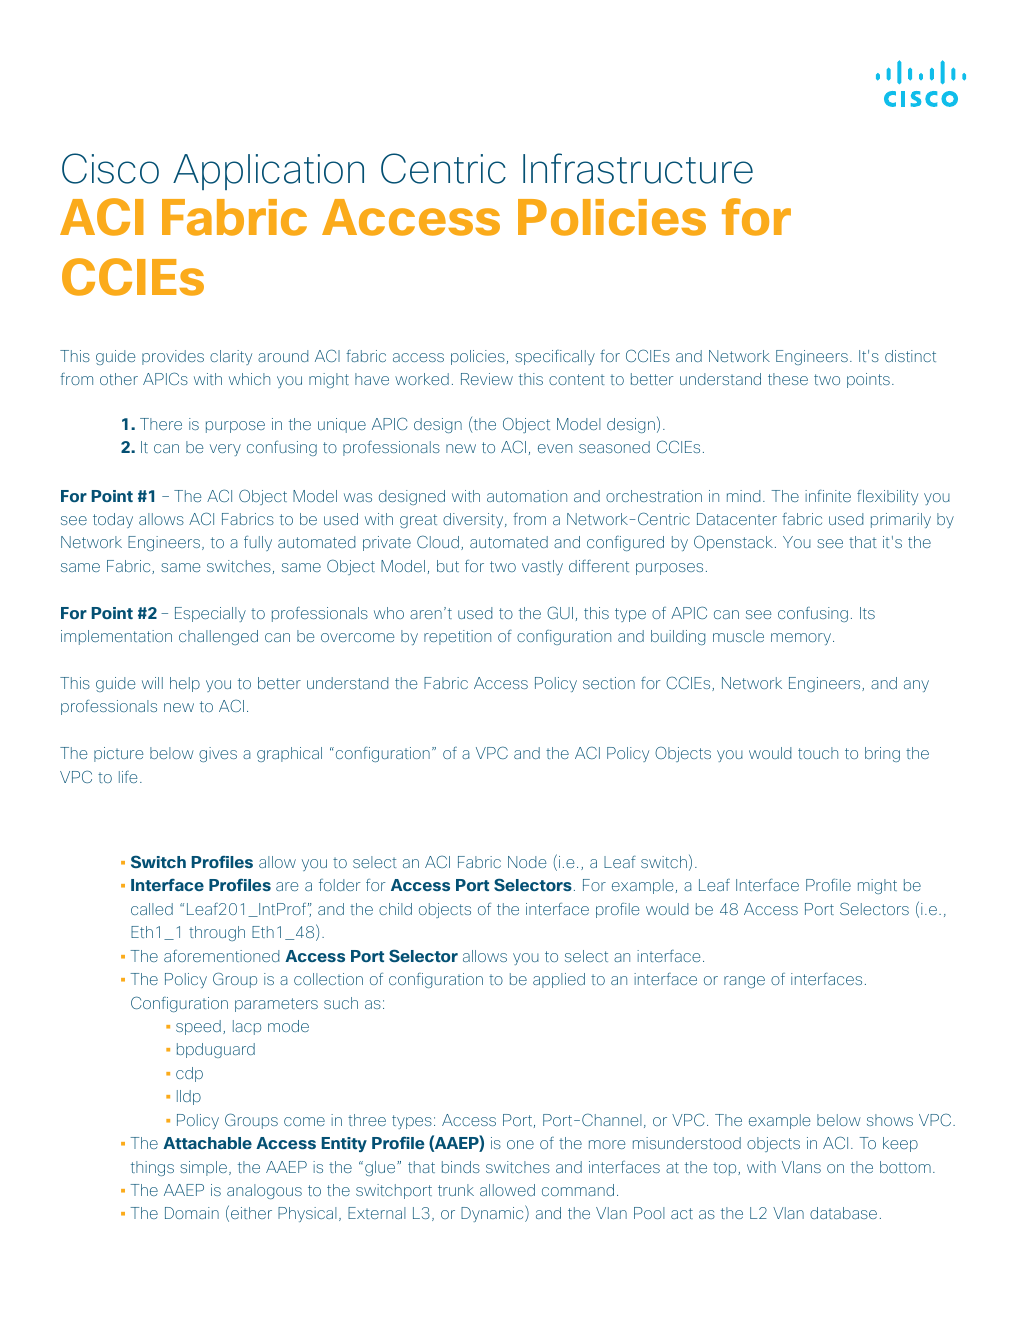 Guide] Fabric Access Policies for CCIEs